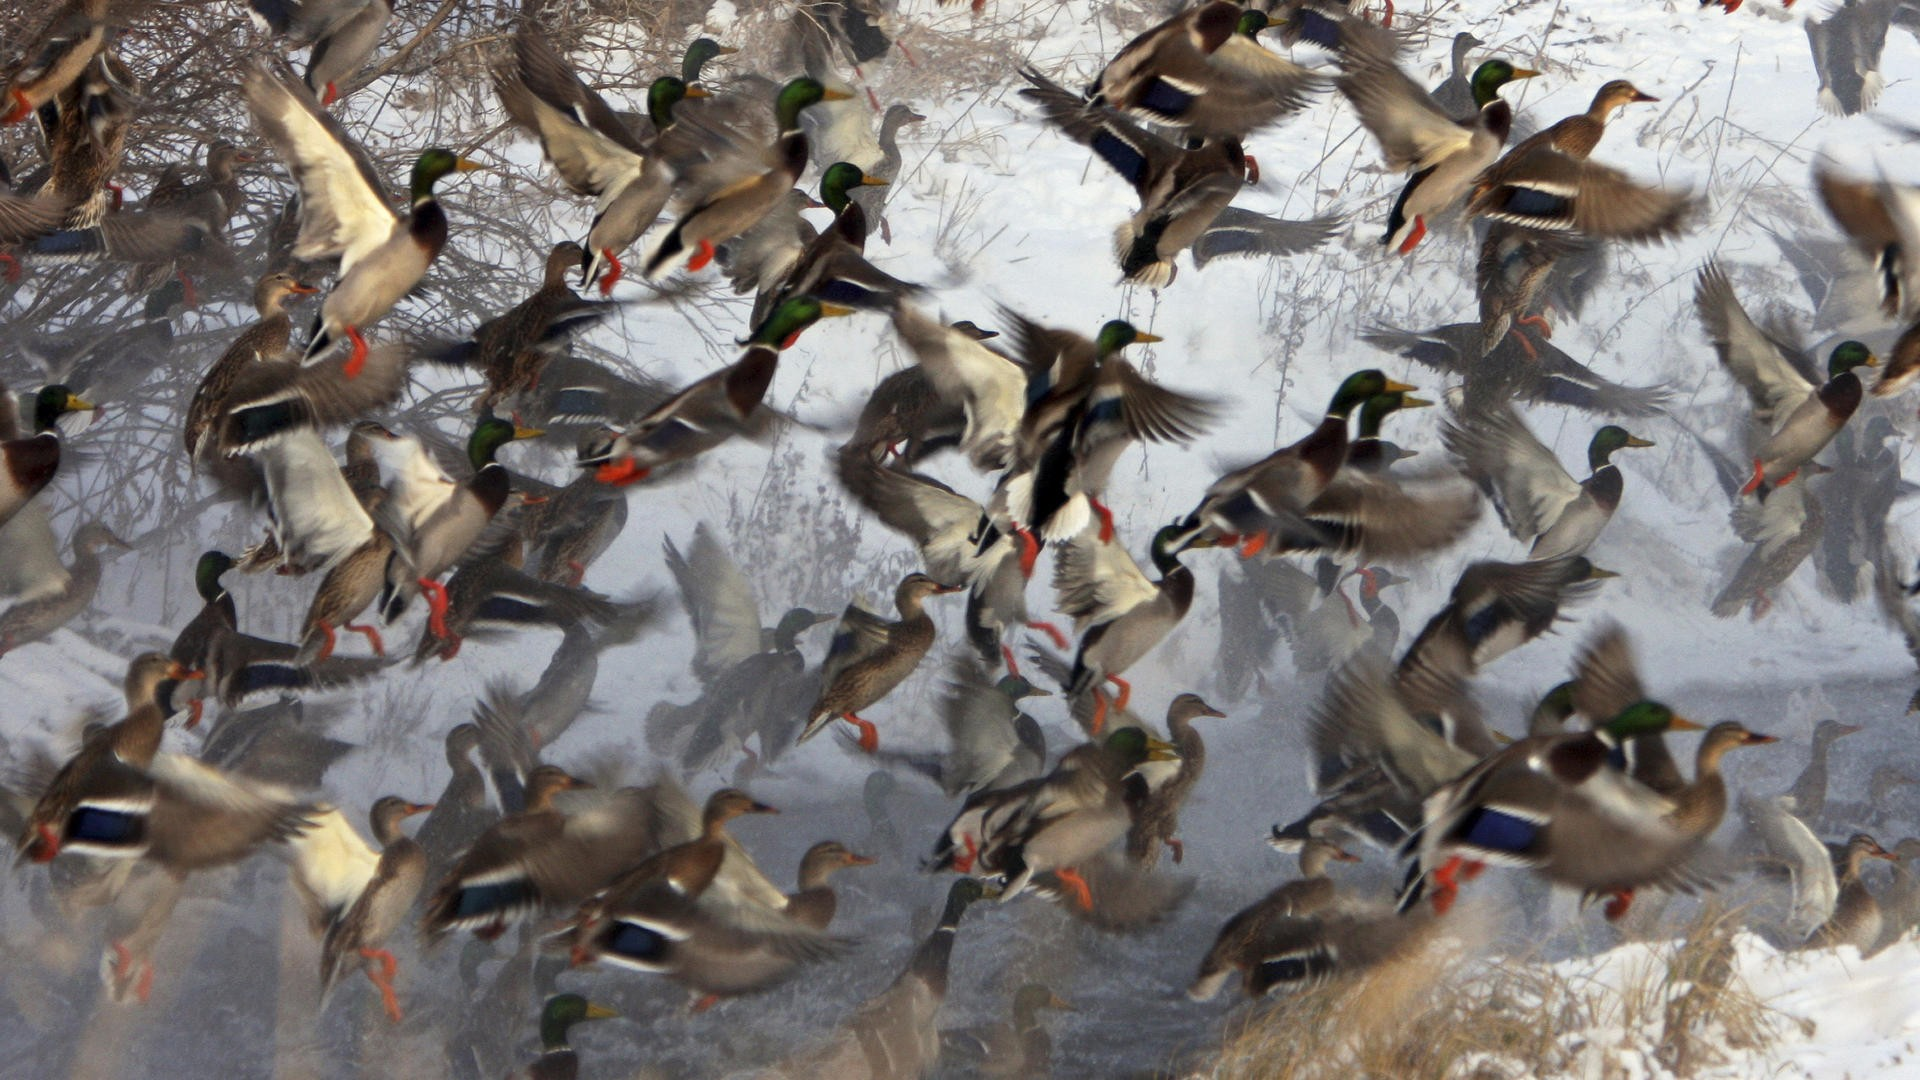 duck hunting camo backgrounds - photo #14